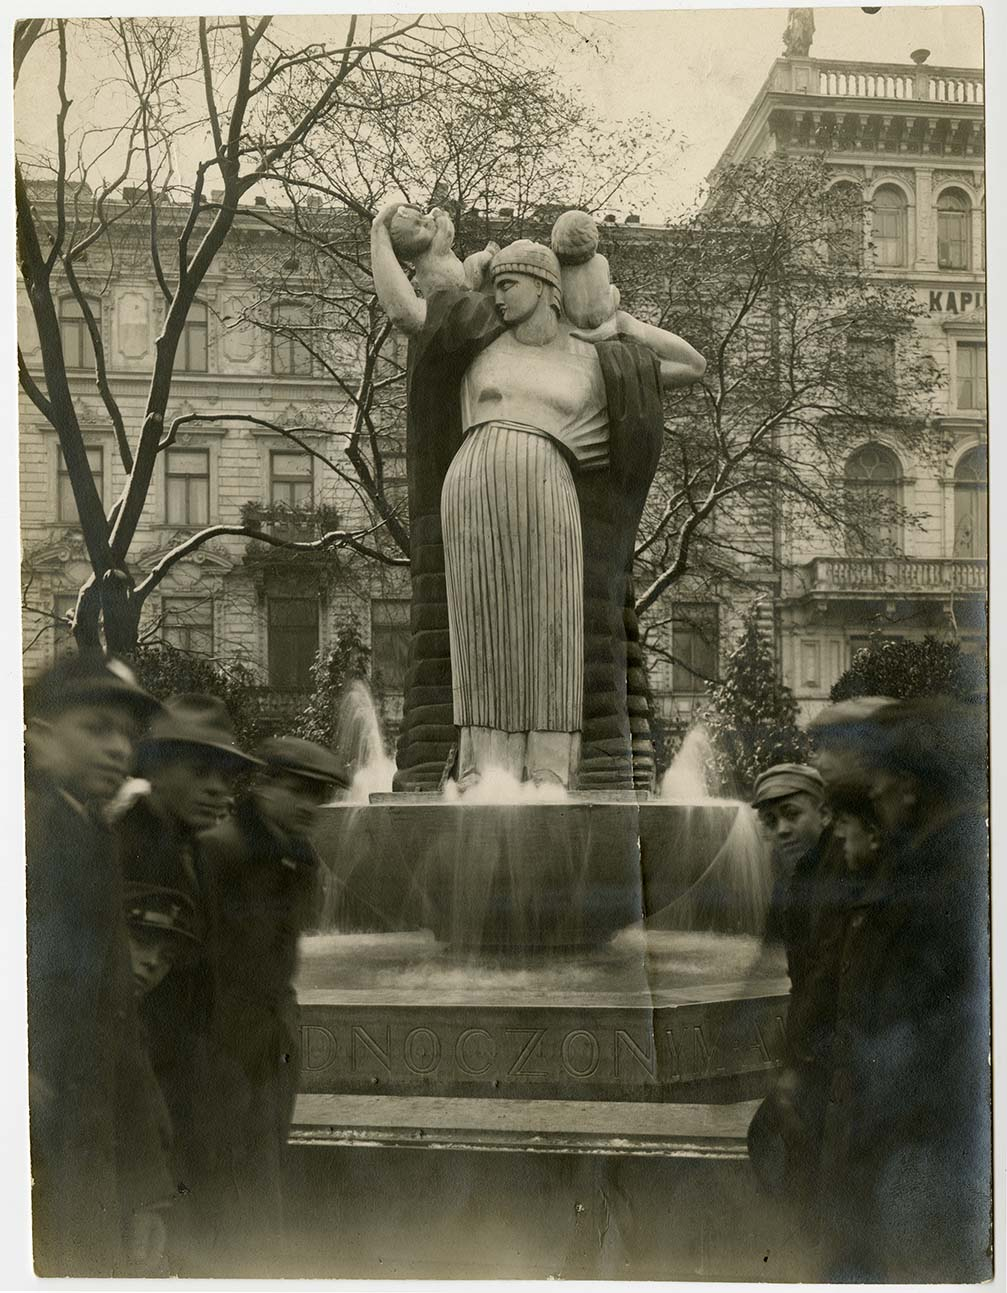 Monument of Gratitude, Hoover Square, Warsaw, October 29, 1922.